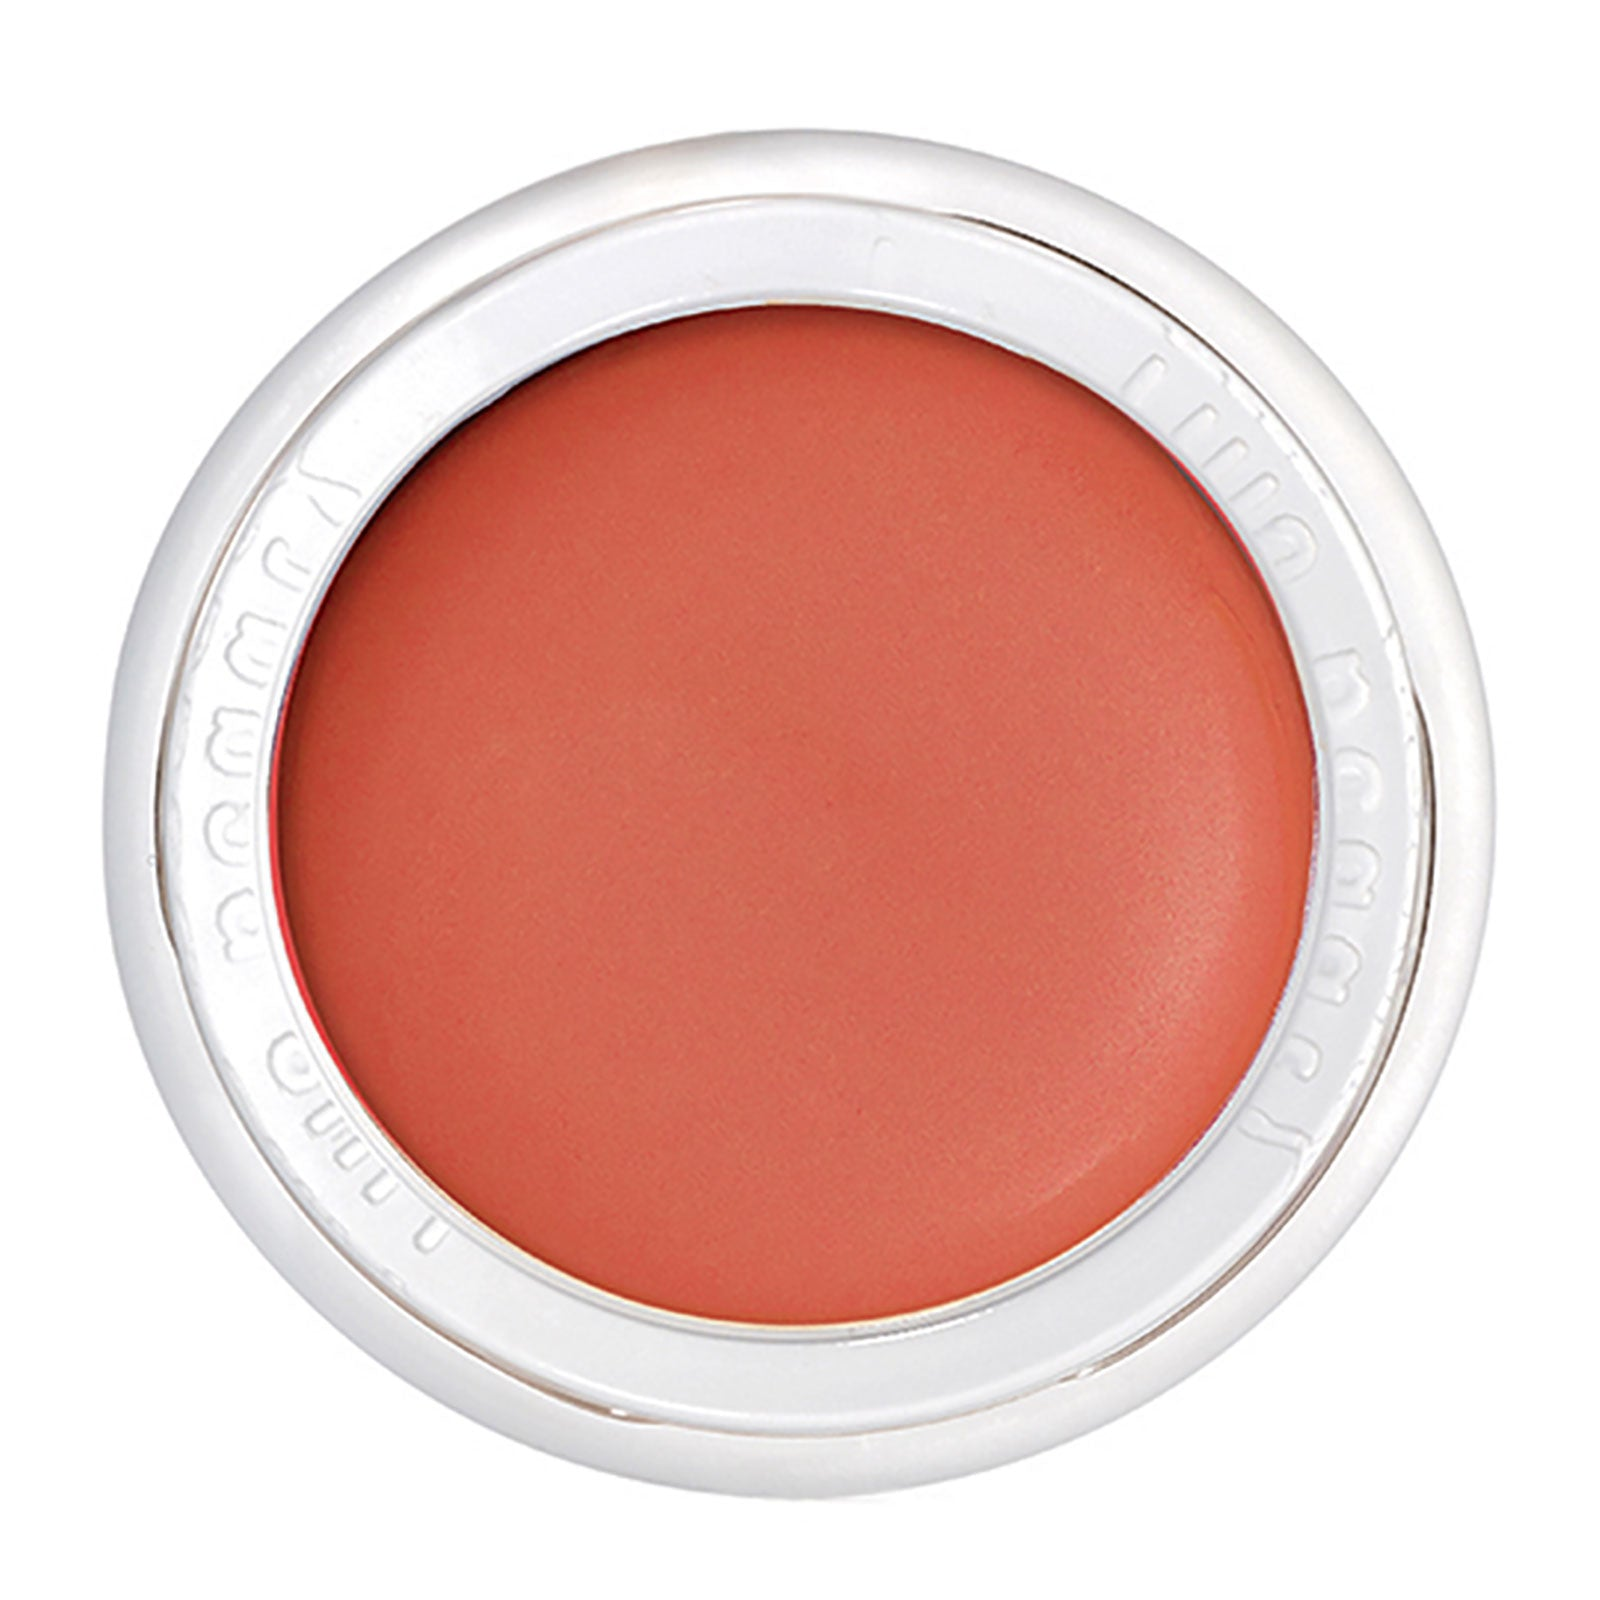 RMS Beauty Lip2Cheek 4.8g